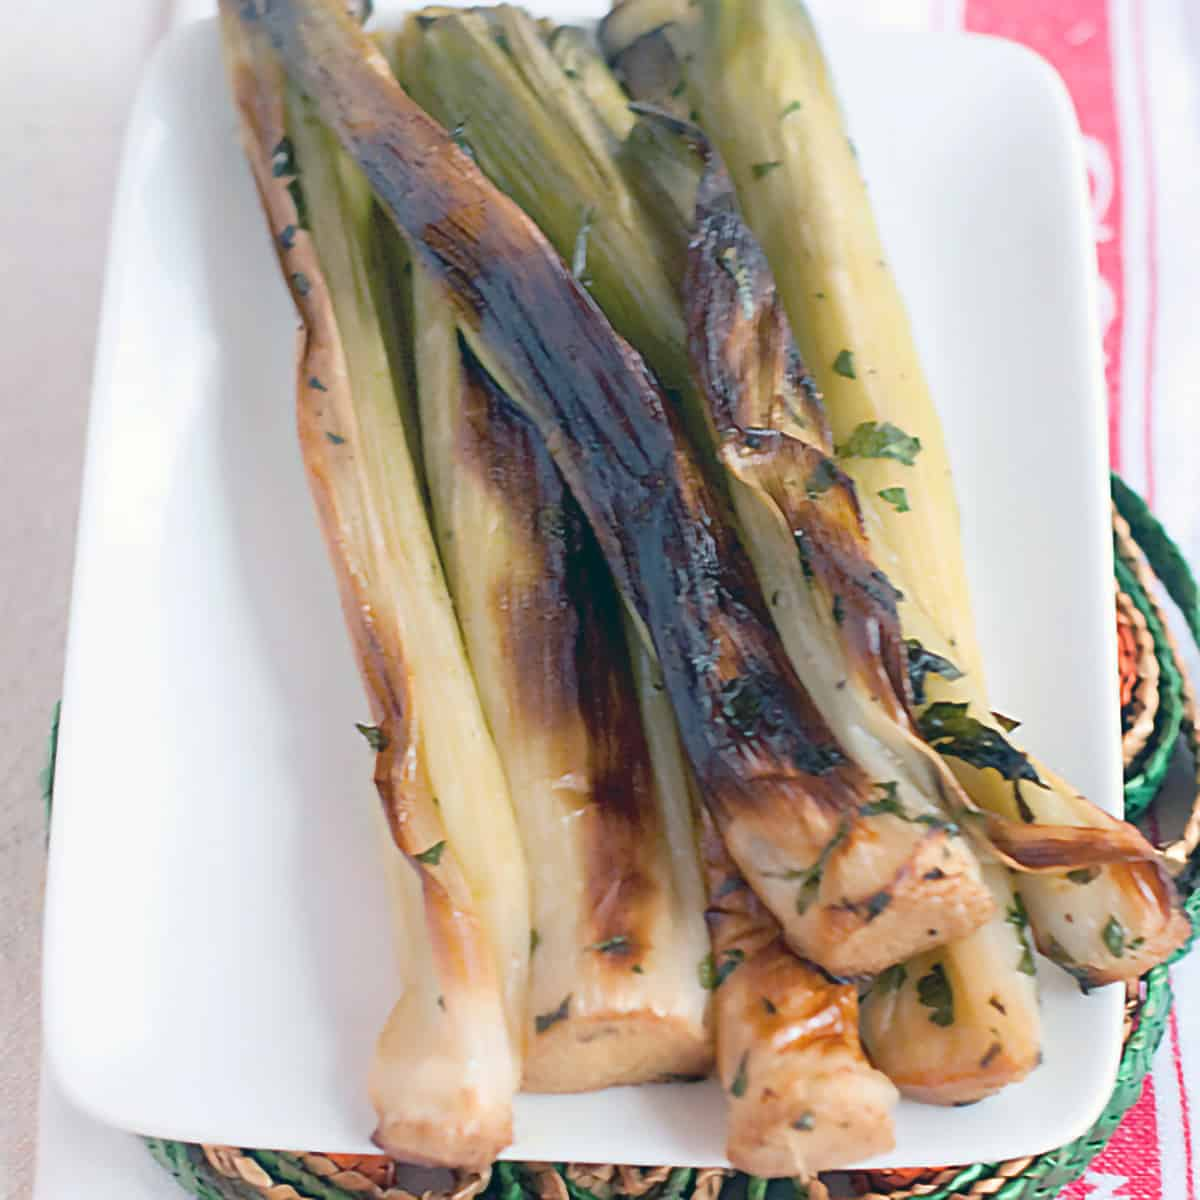 Roasted leeks on a white serving plate.